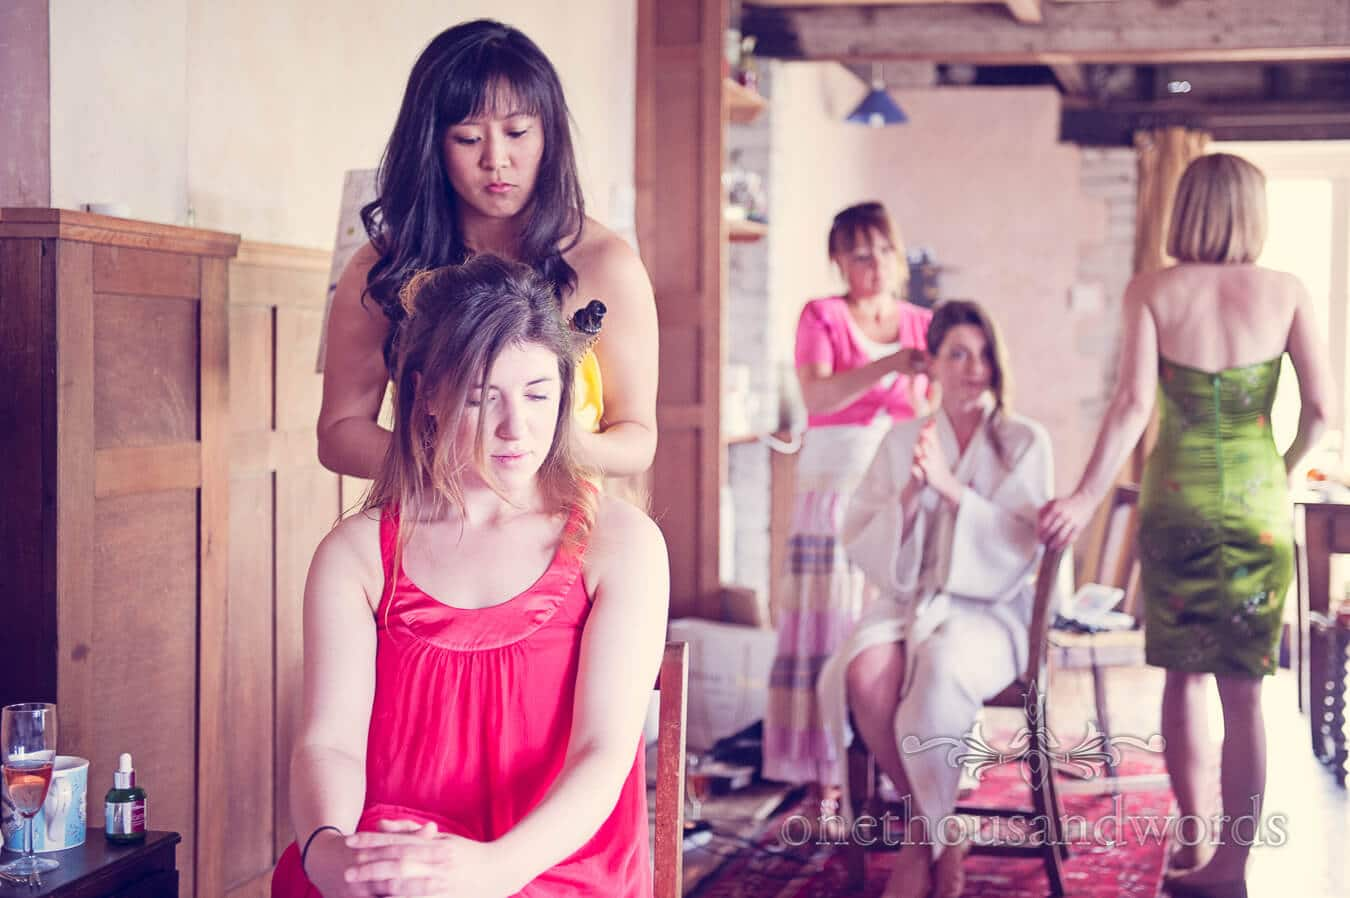 Wedding morning hair dressing at Prussia Cove Wedding venue